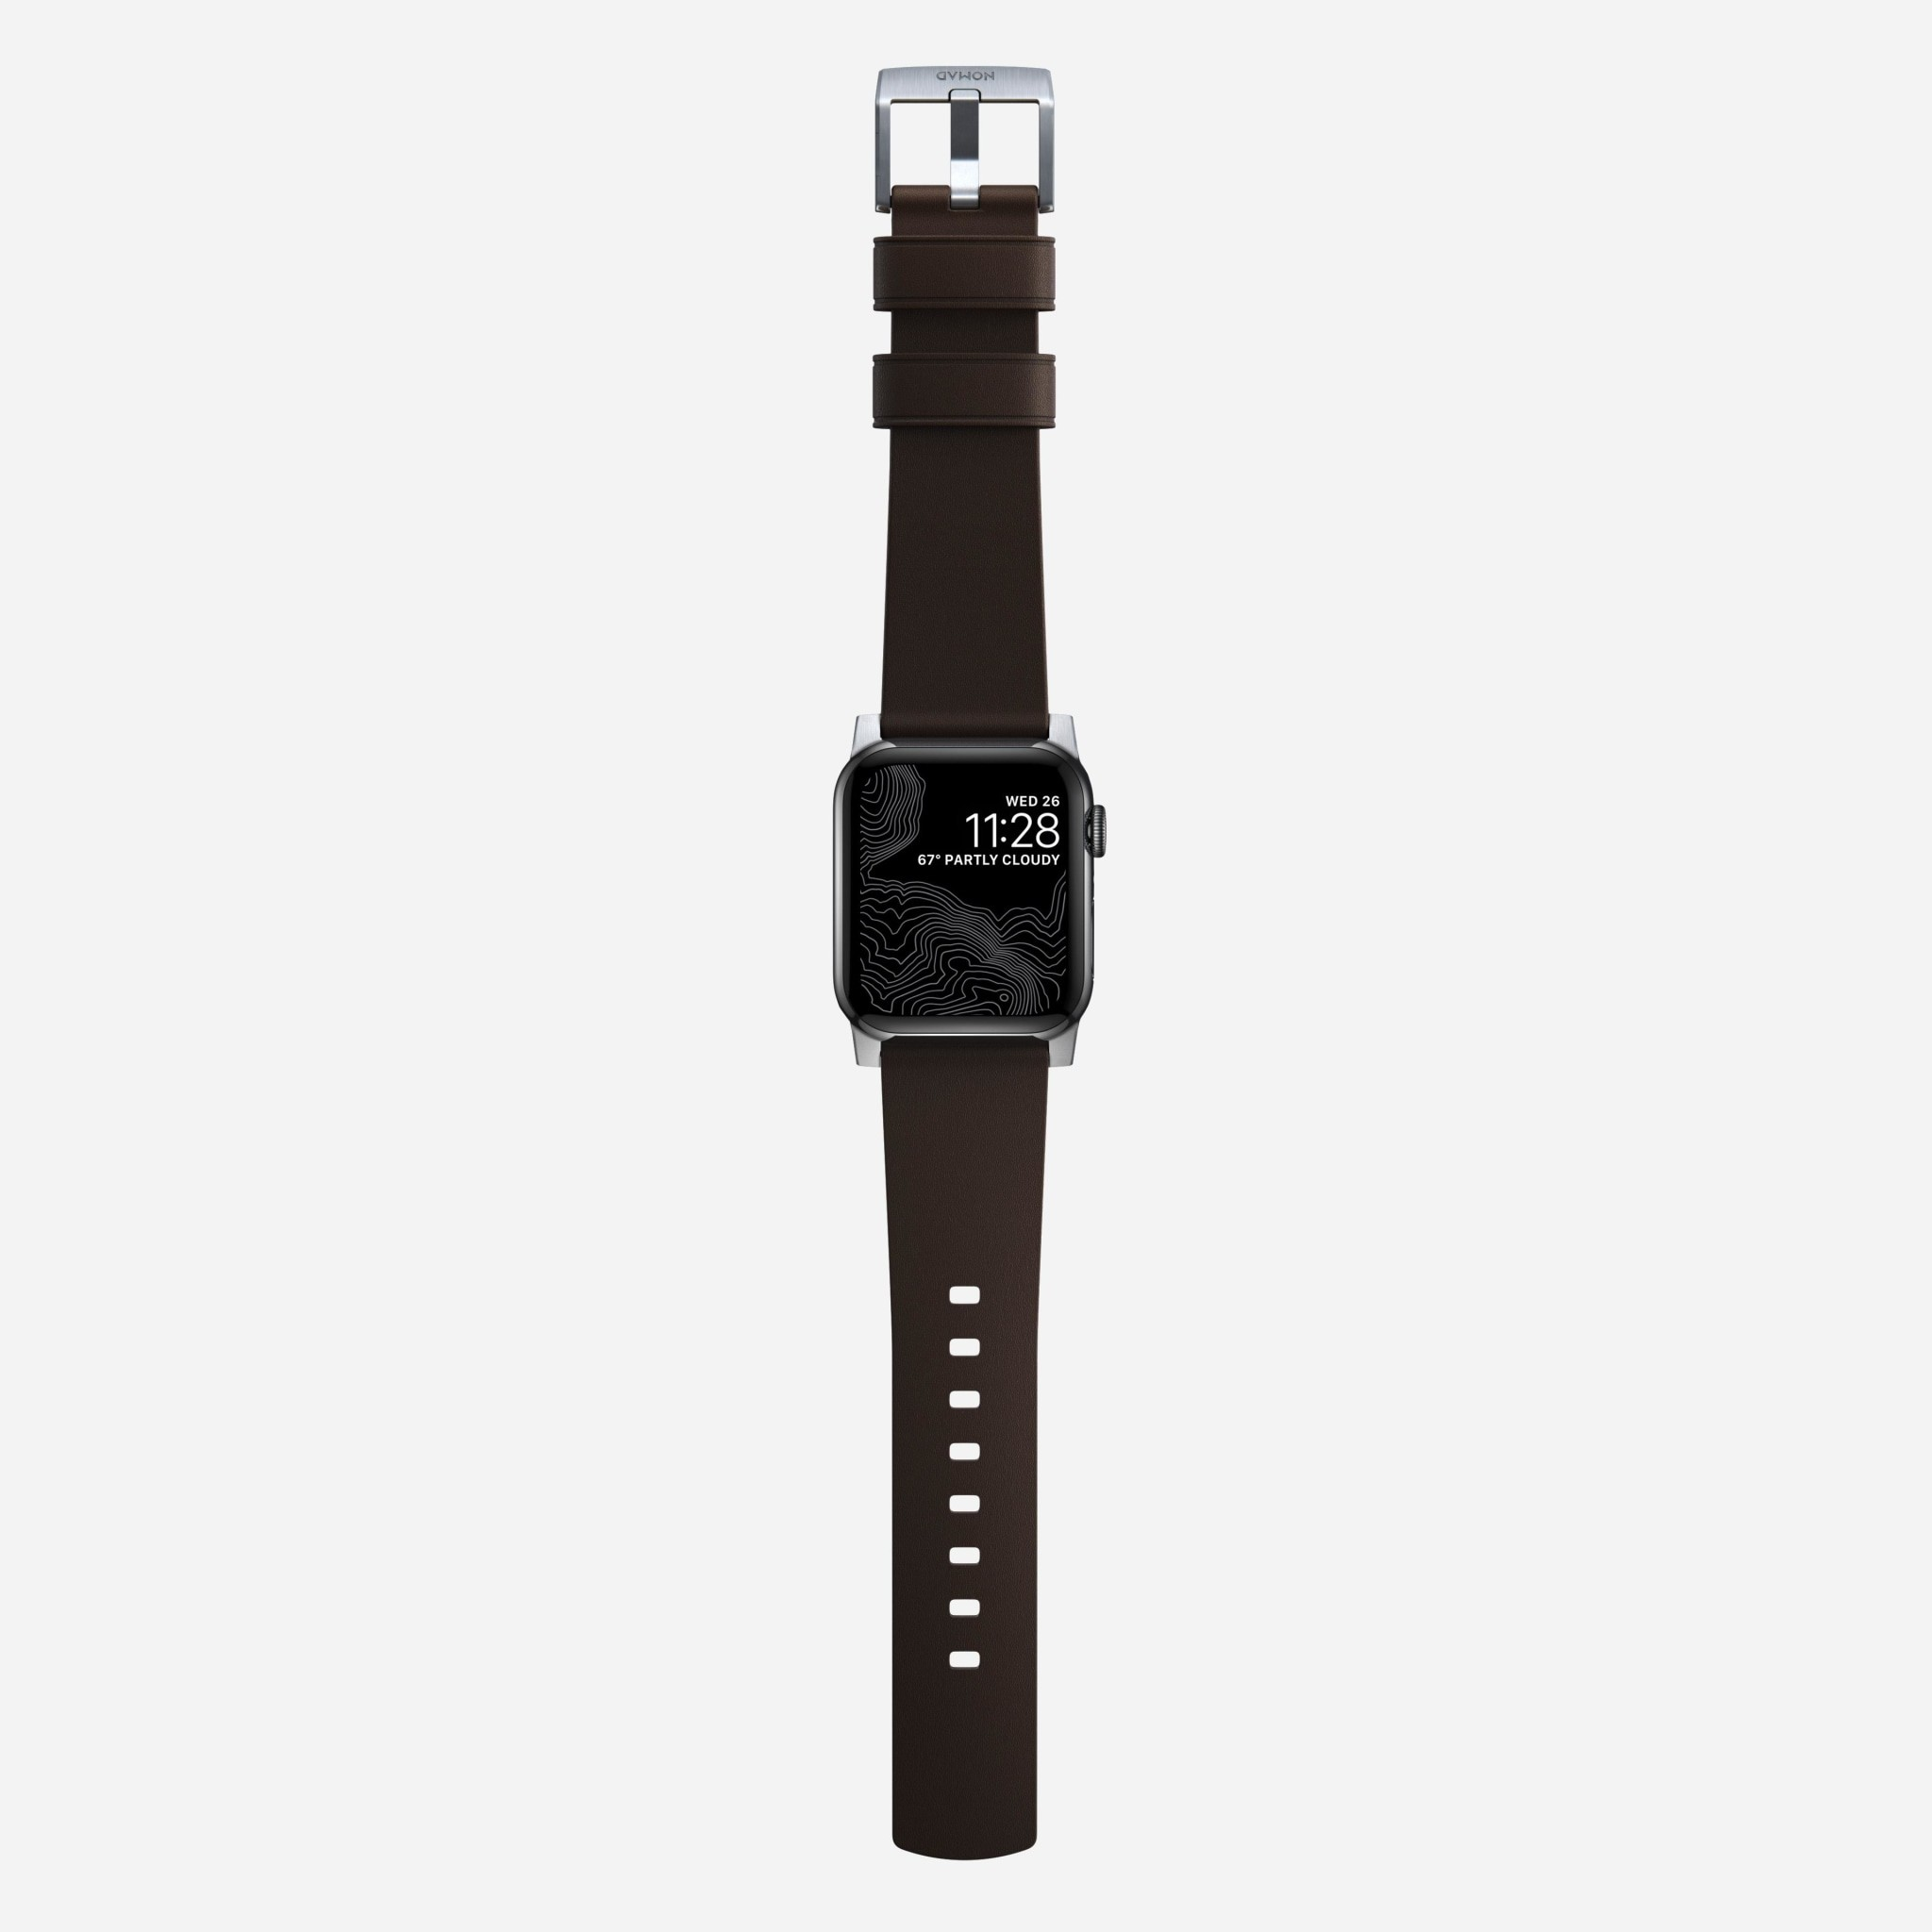 Nomad - Active Strap Pro - Apple Watch 44/42mm - Brown - Silver Hardware, NM1A4MSNW0